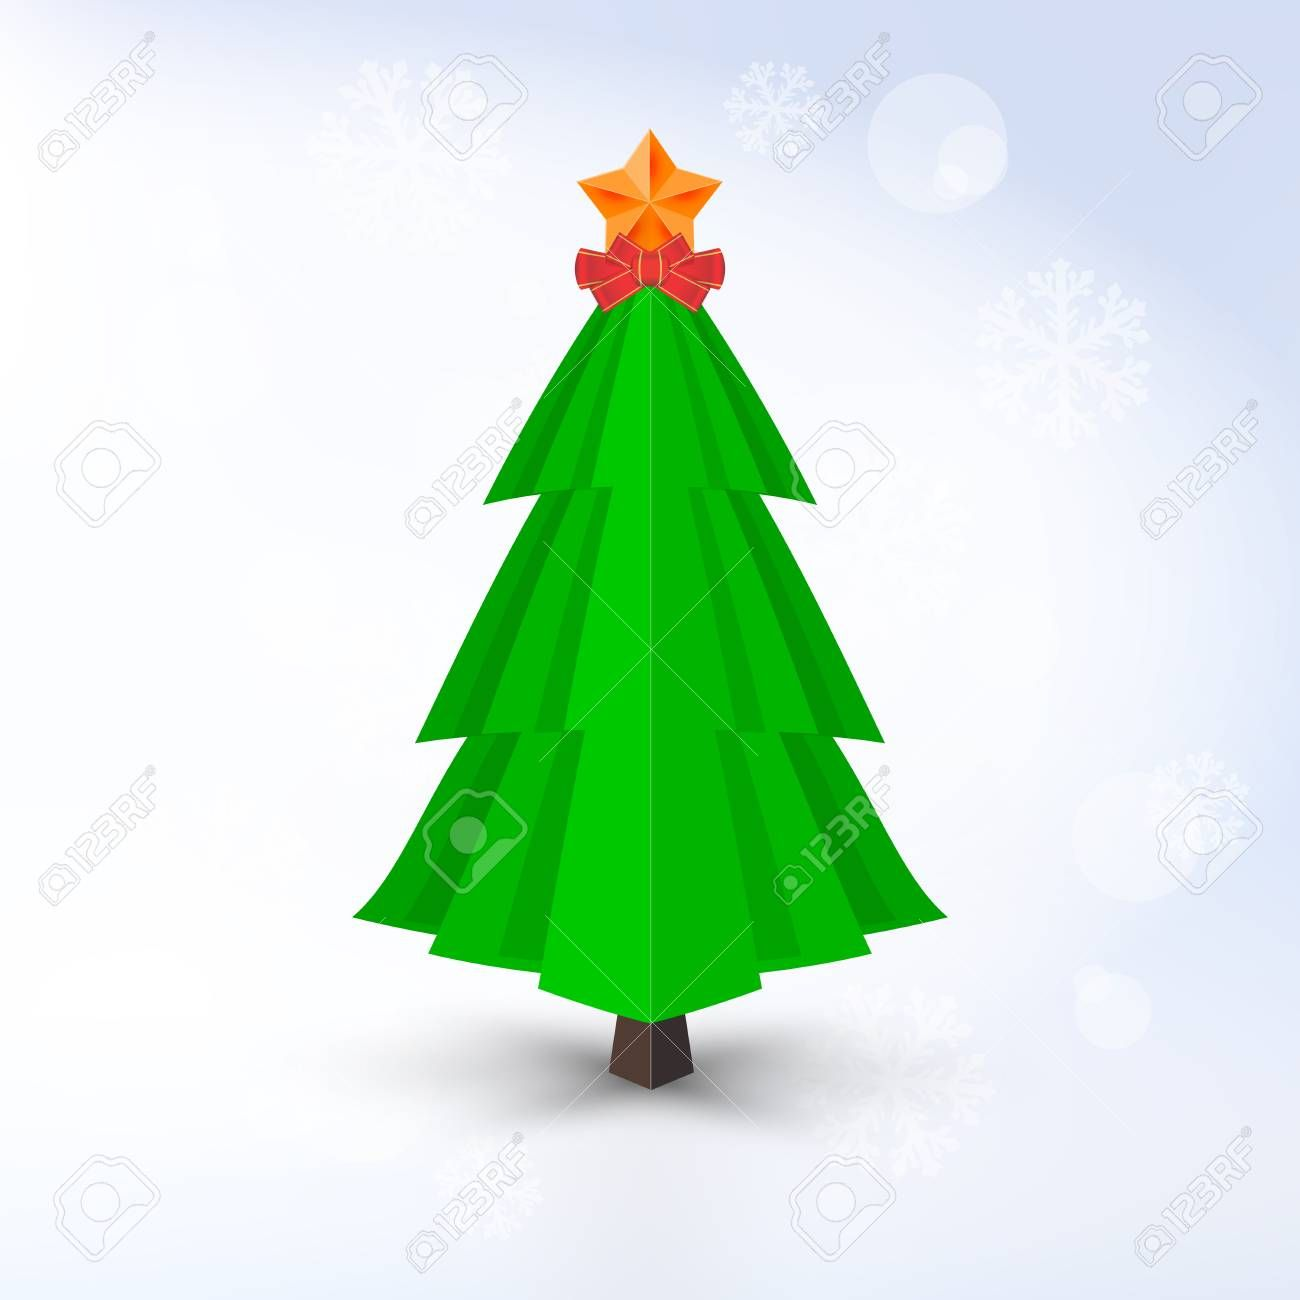 Decorative Vector Christmas Tree With Golden Star And Red Bow On Light Background Barely Distinguisha In 2020 Christmas Tree Lighting Lights Background Christmas Tree